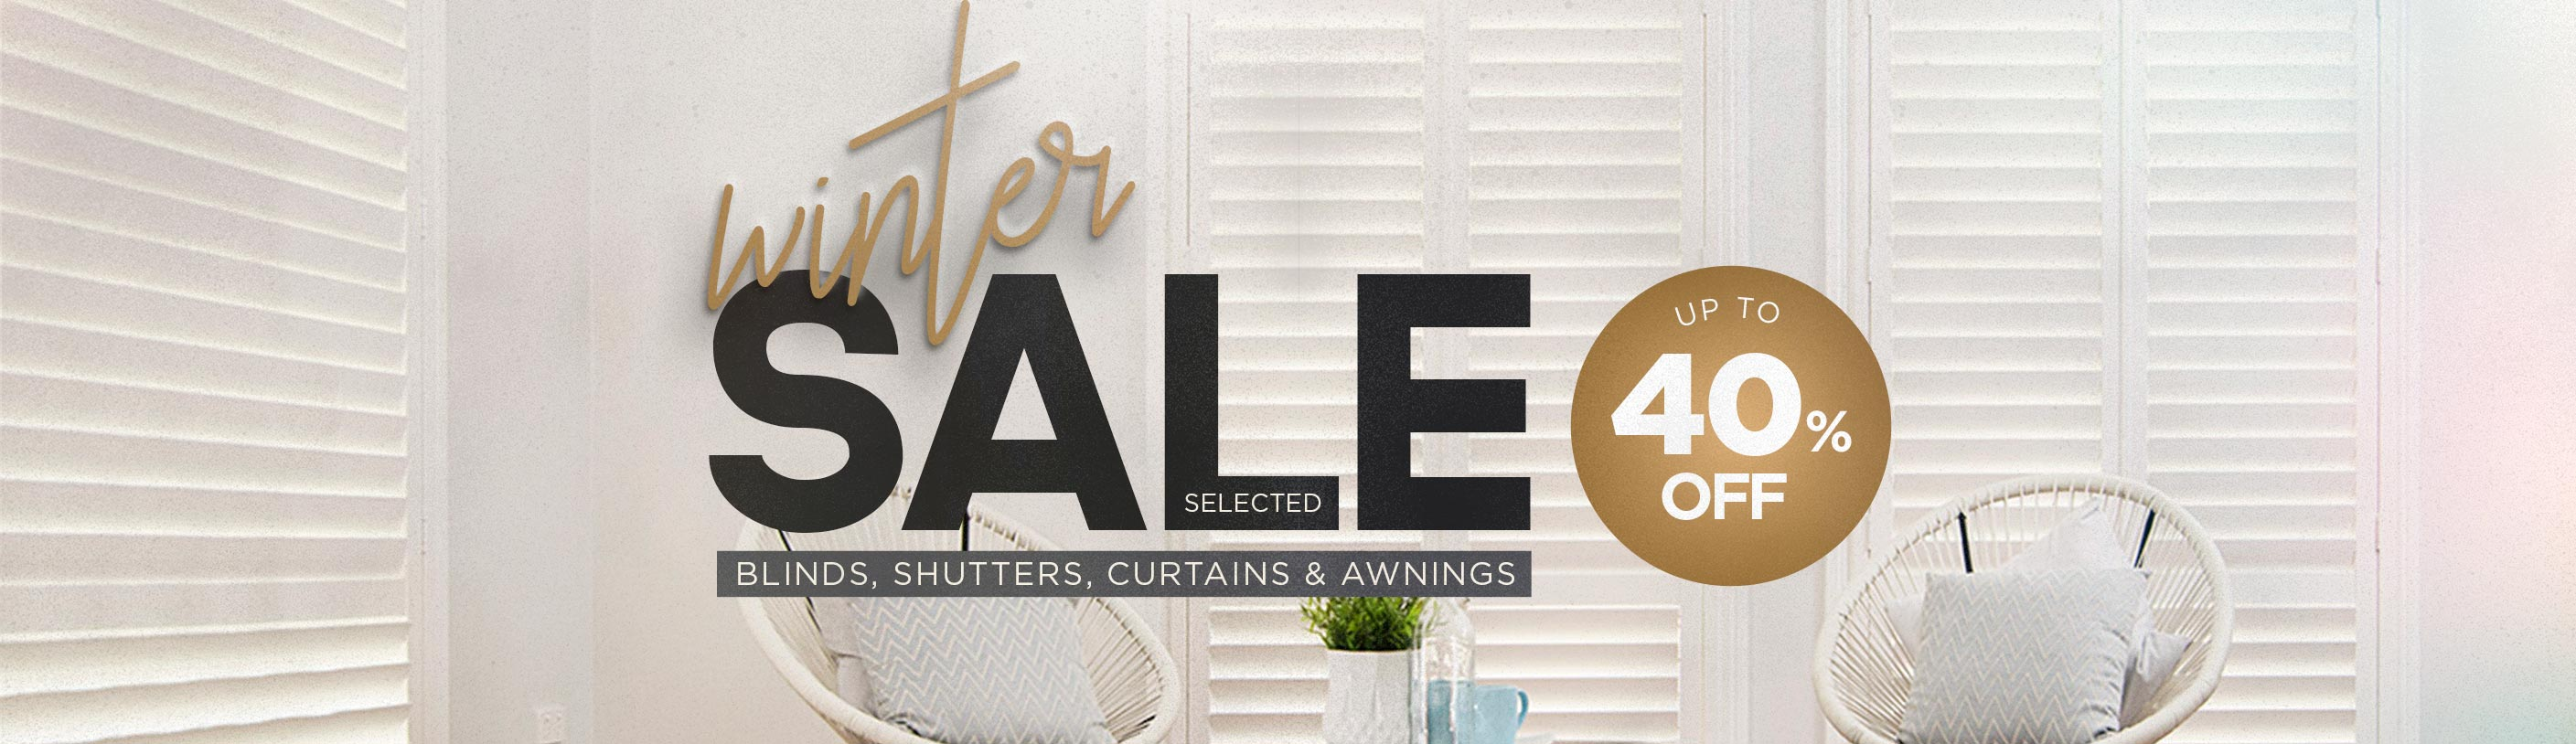 Amaru Specials Winter sale on selected Blinds, Shutters, Curtains & Awnings